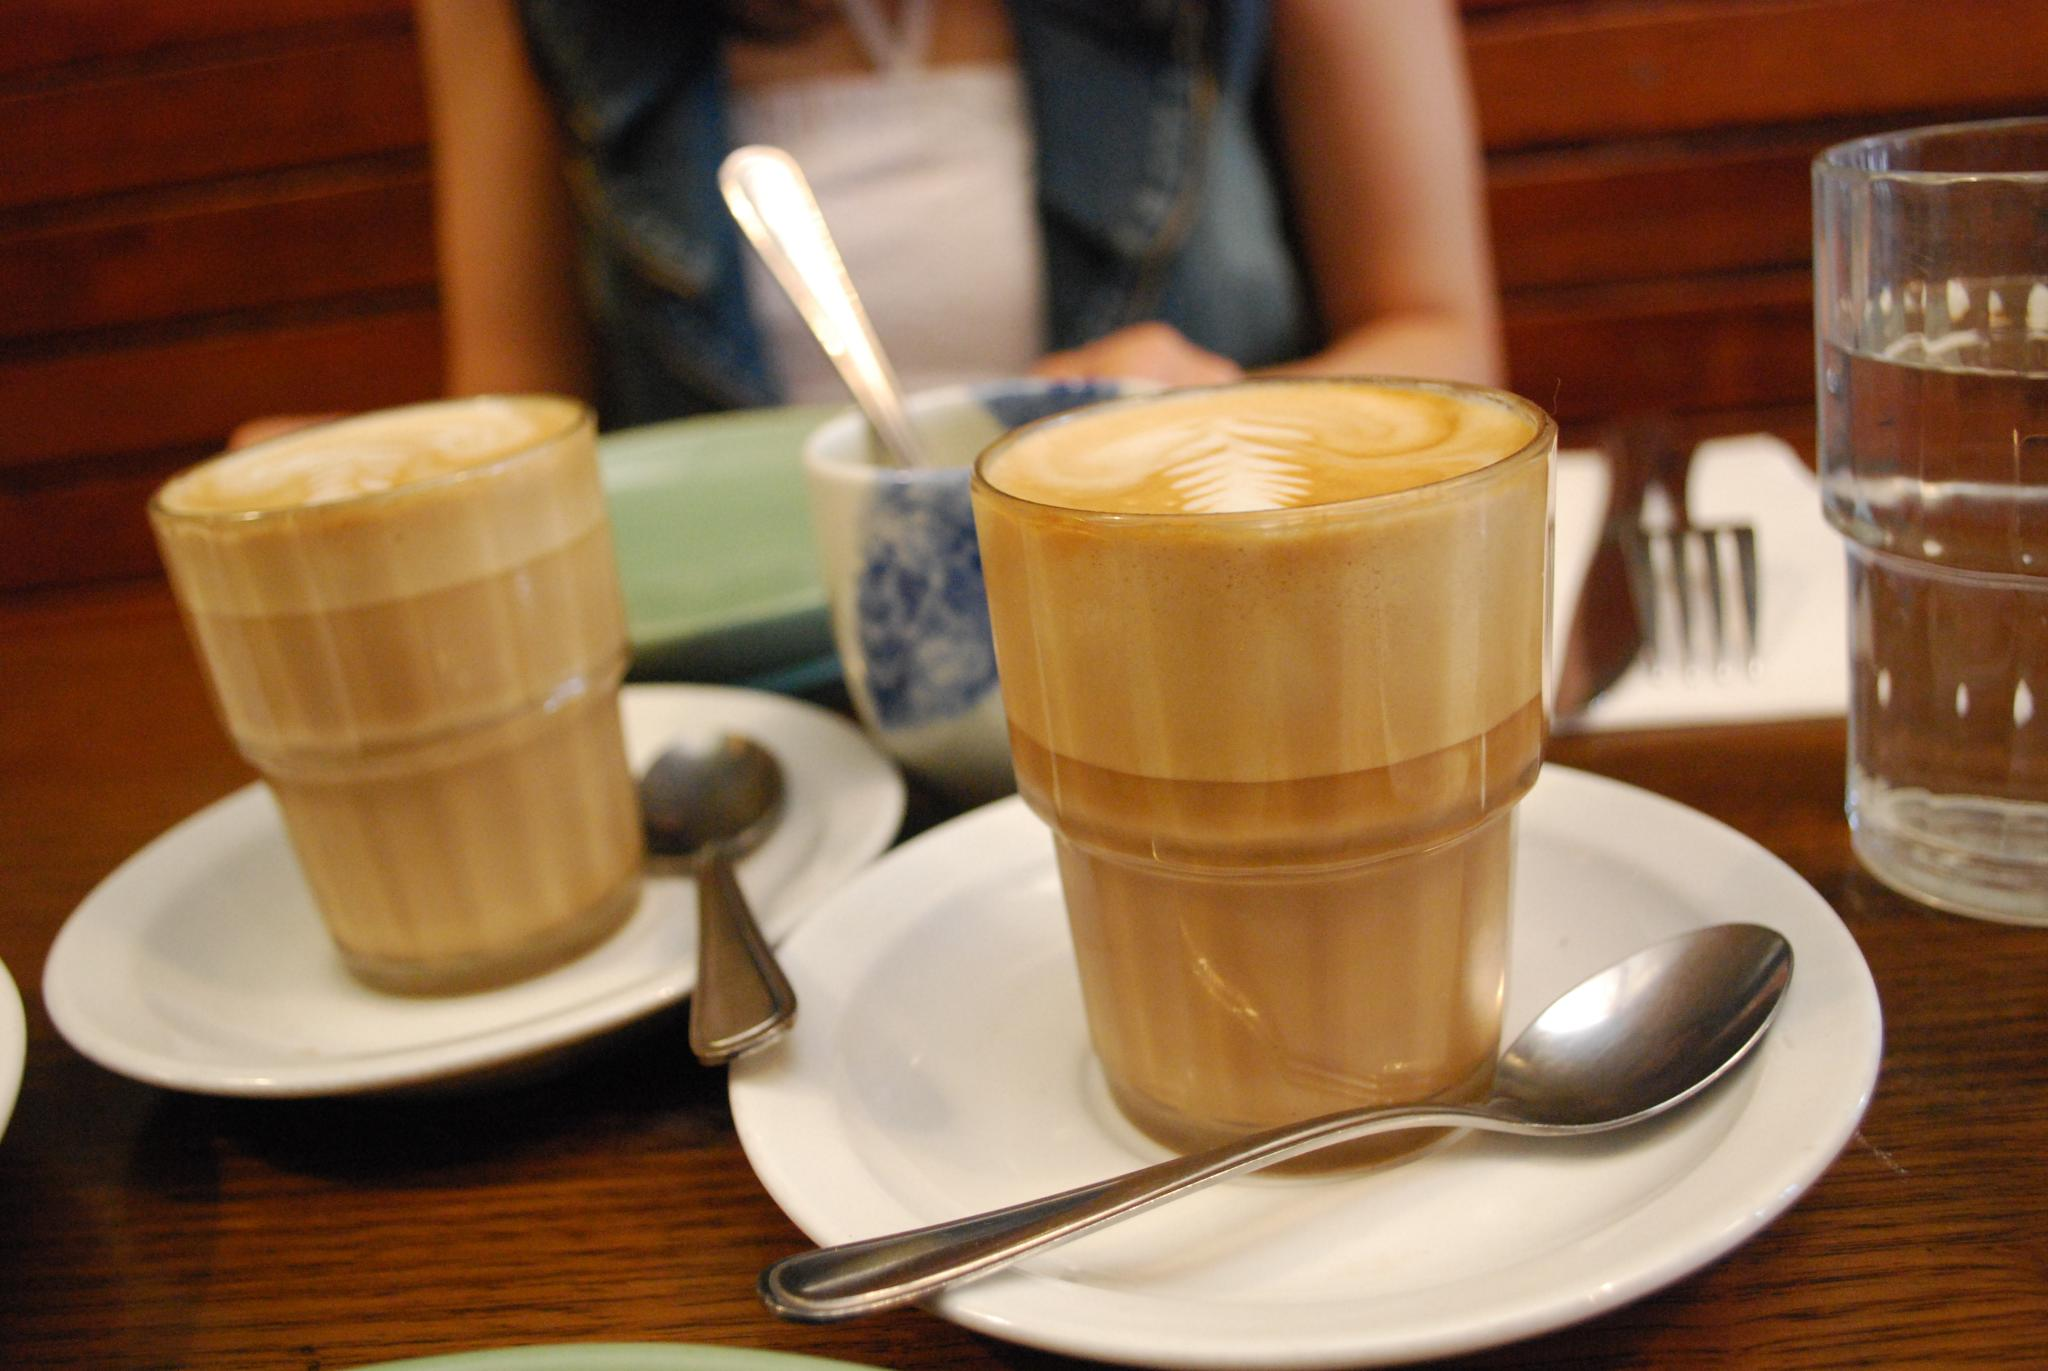 Caffe Latte File Soymilk Caffe Latte Art2 Flickr User Avlxyz Jpg Wikimedia